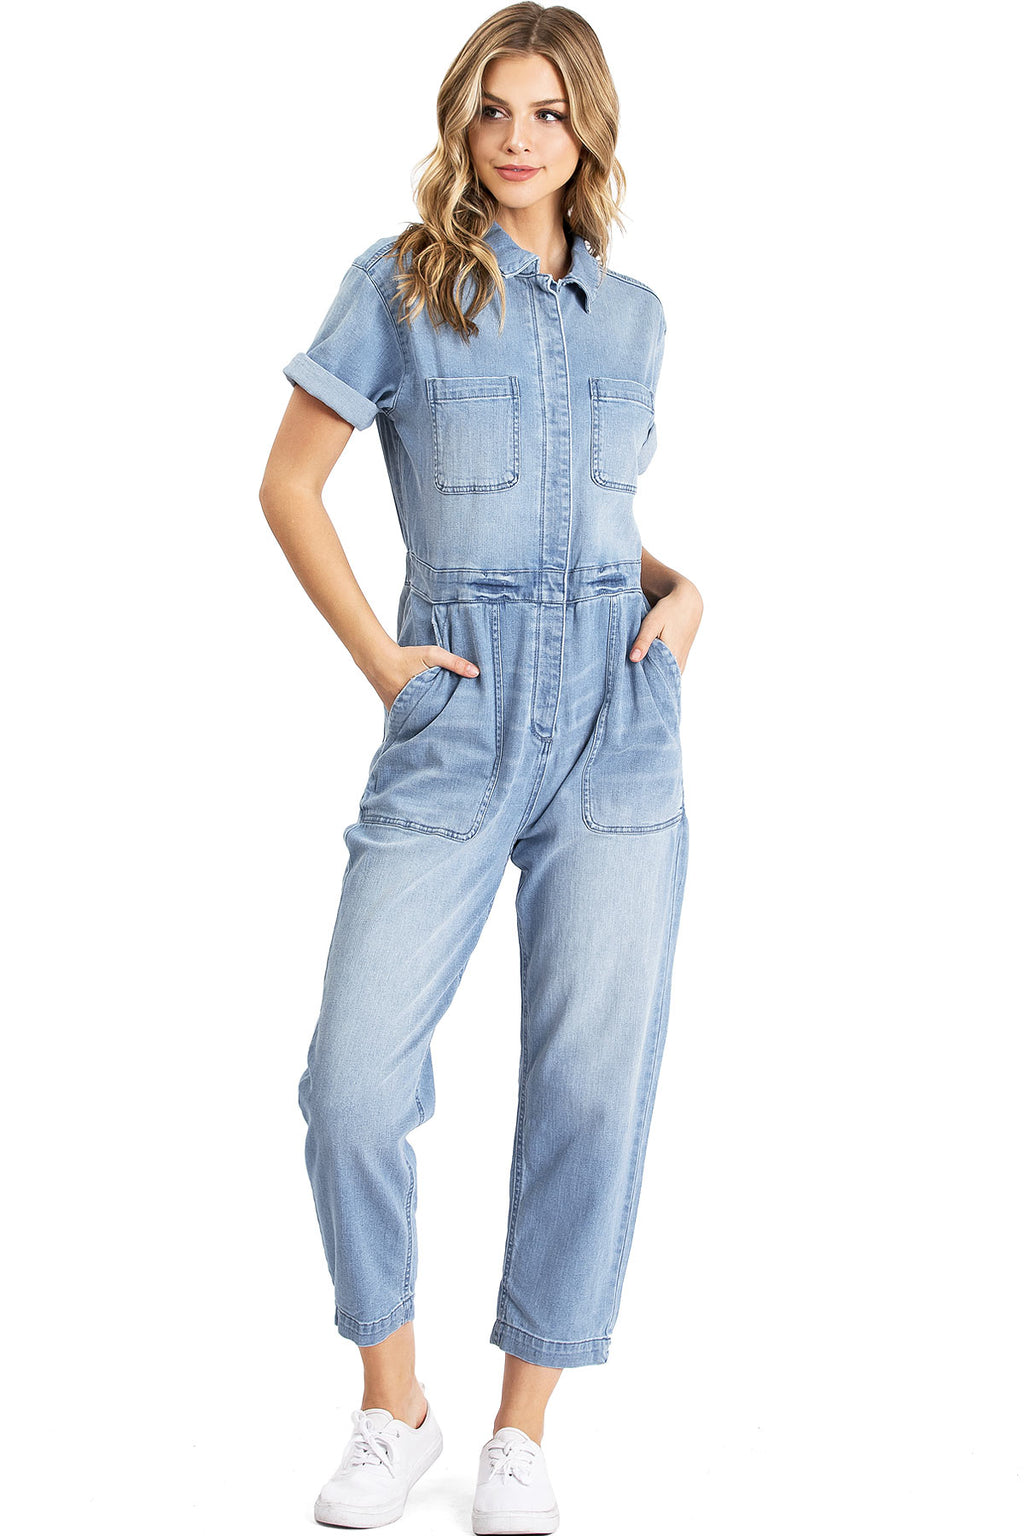 Refinery Denim Jumpsuit